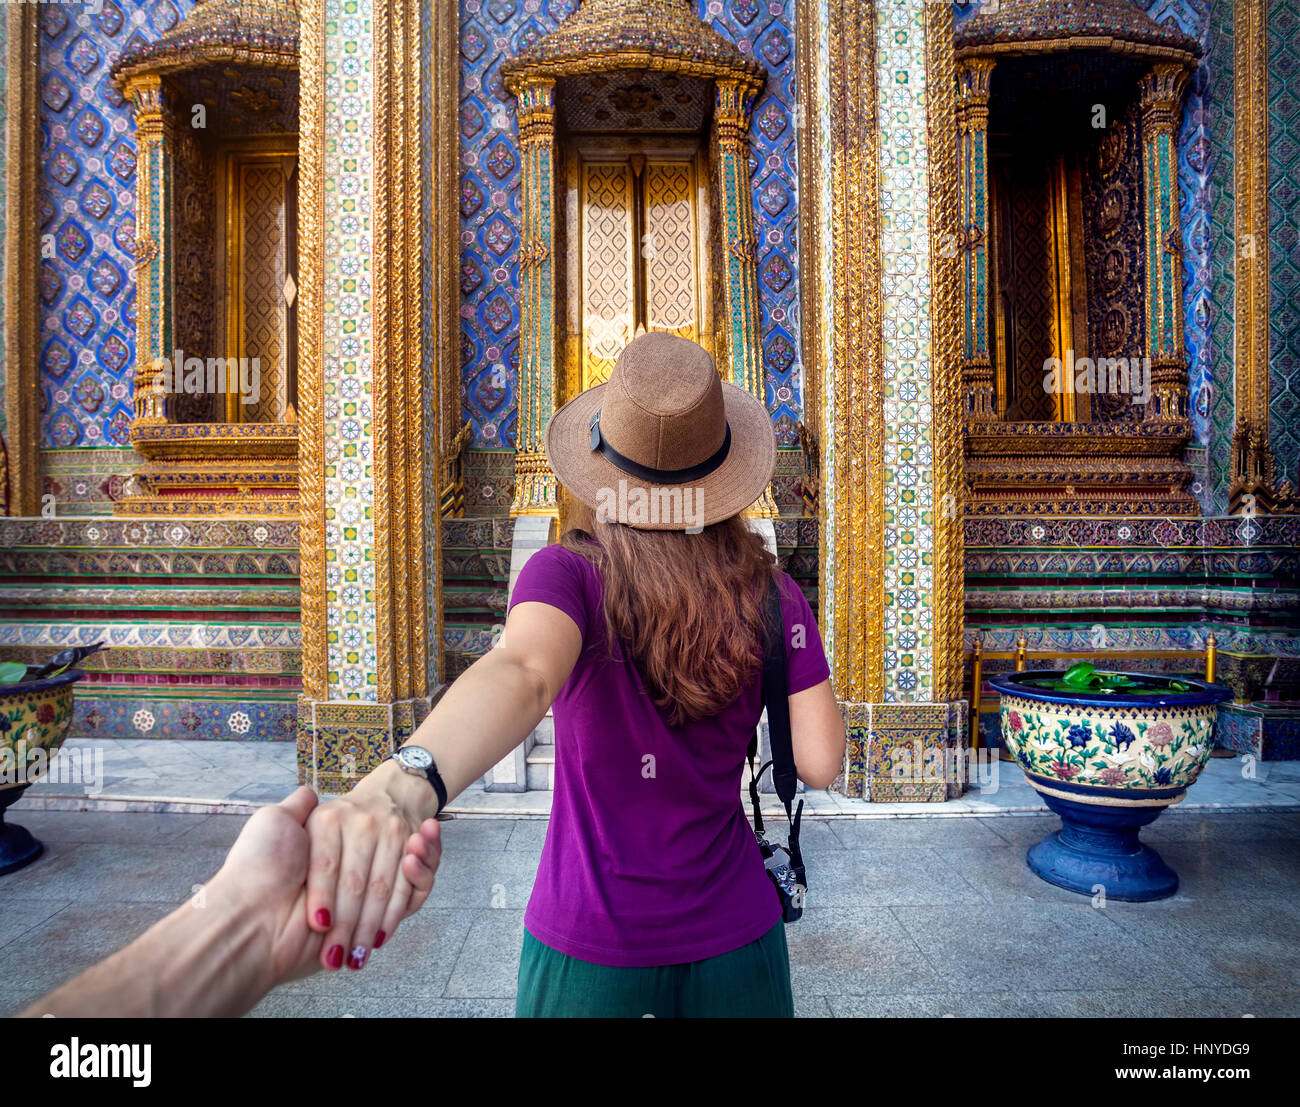 Woman in hat and purple t-shirt leading man by hand to the Wat Phra Kaew famous temple in Bangkok, Thailand - Stock Image